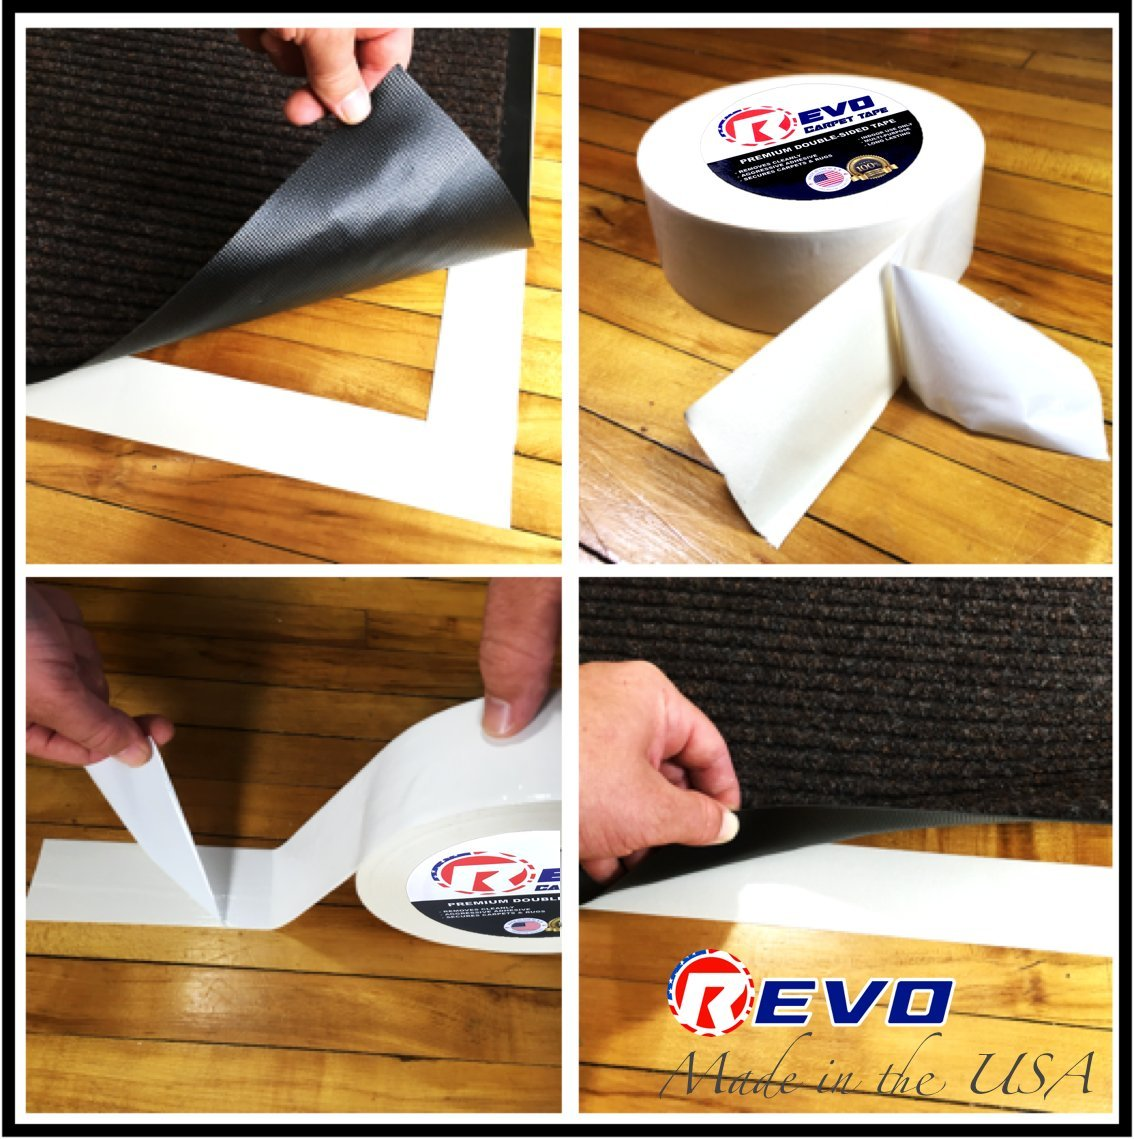 REVO Double Sided Carpet Tape (2'' x 36 yards) MADE IN USA - Aggressive rubber adhesive - Long lasting - Double Sided Tape - Professional Quality by Revo (Image #2)